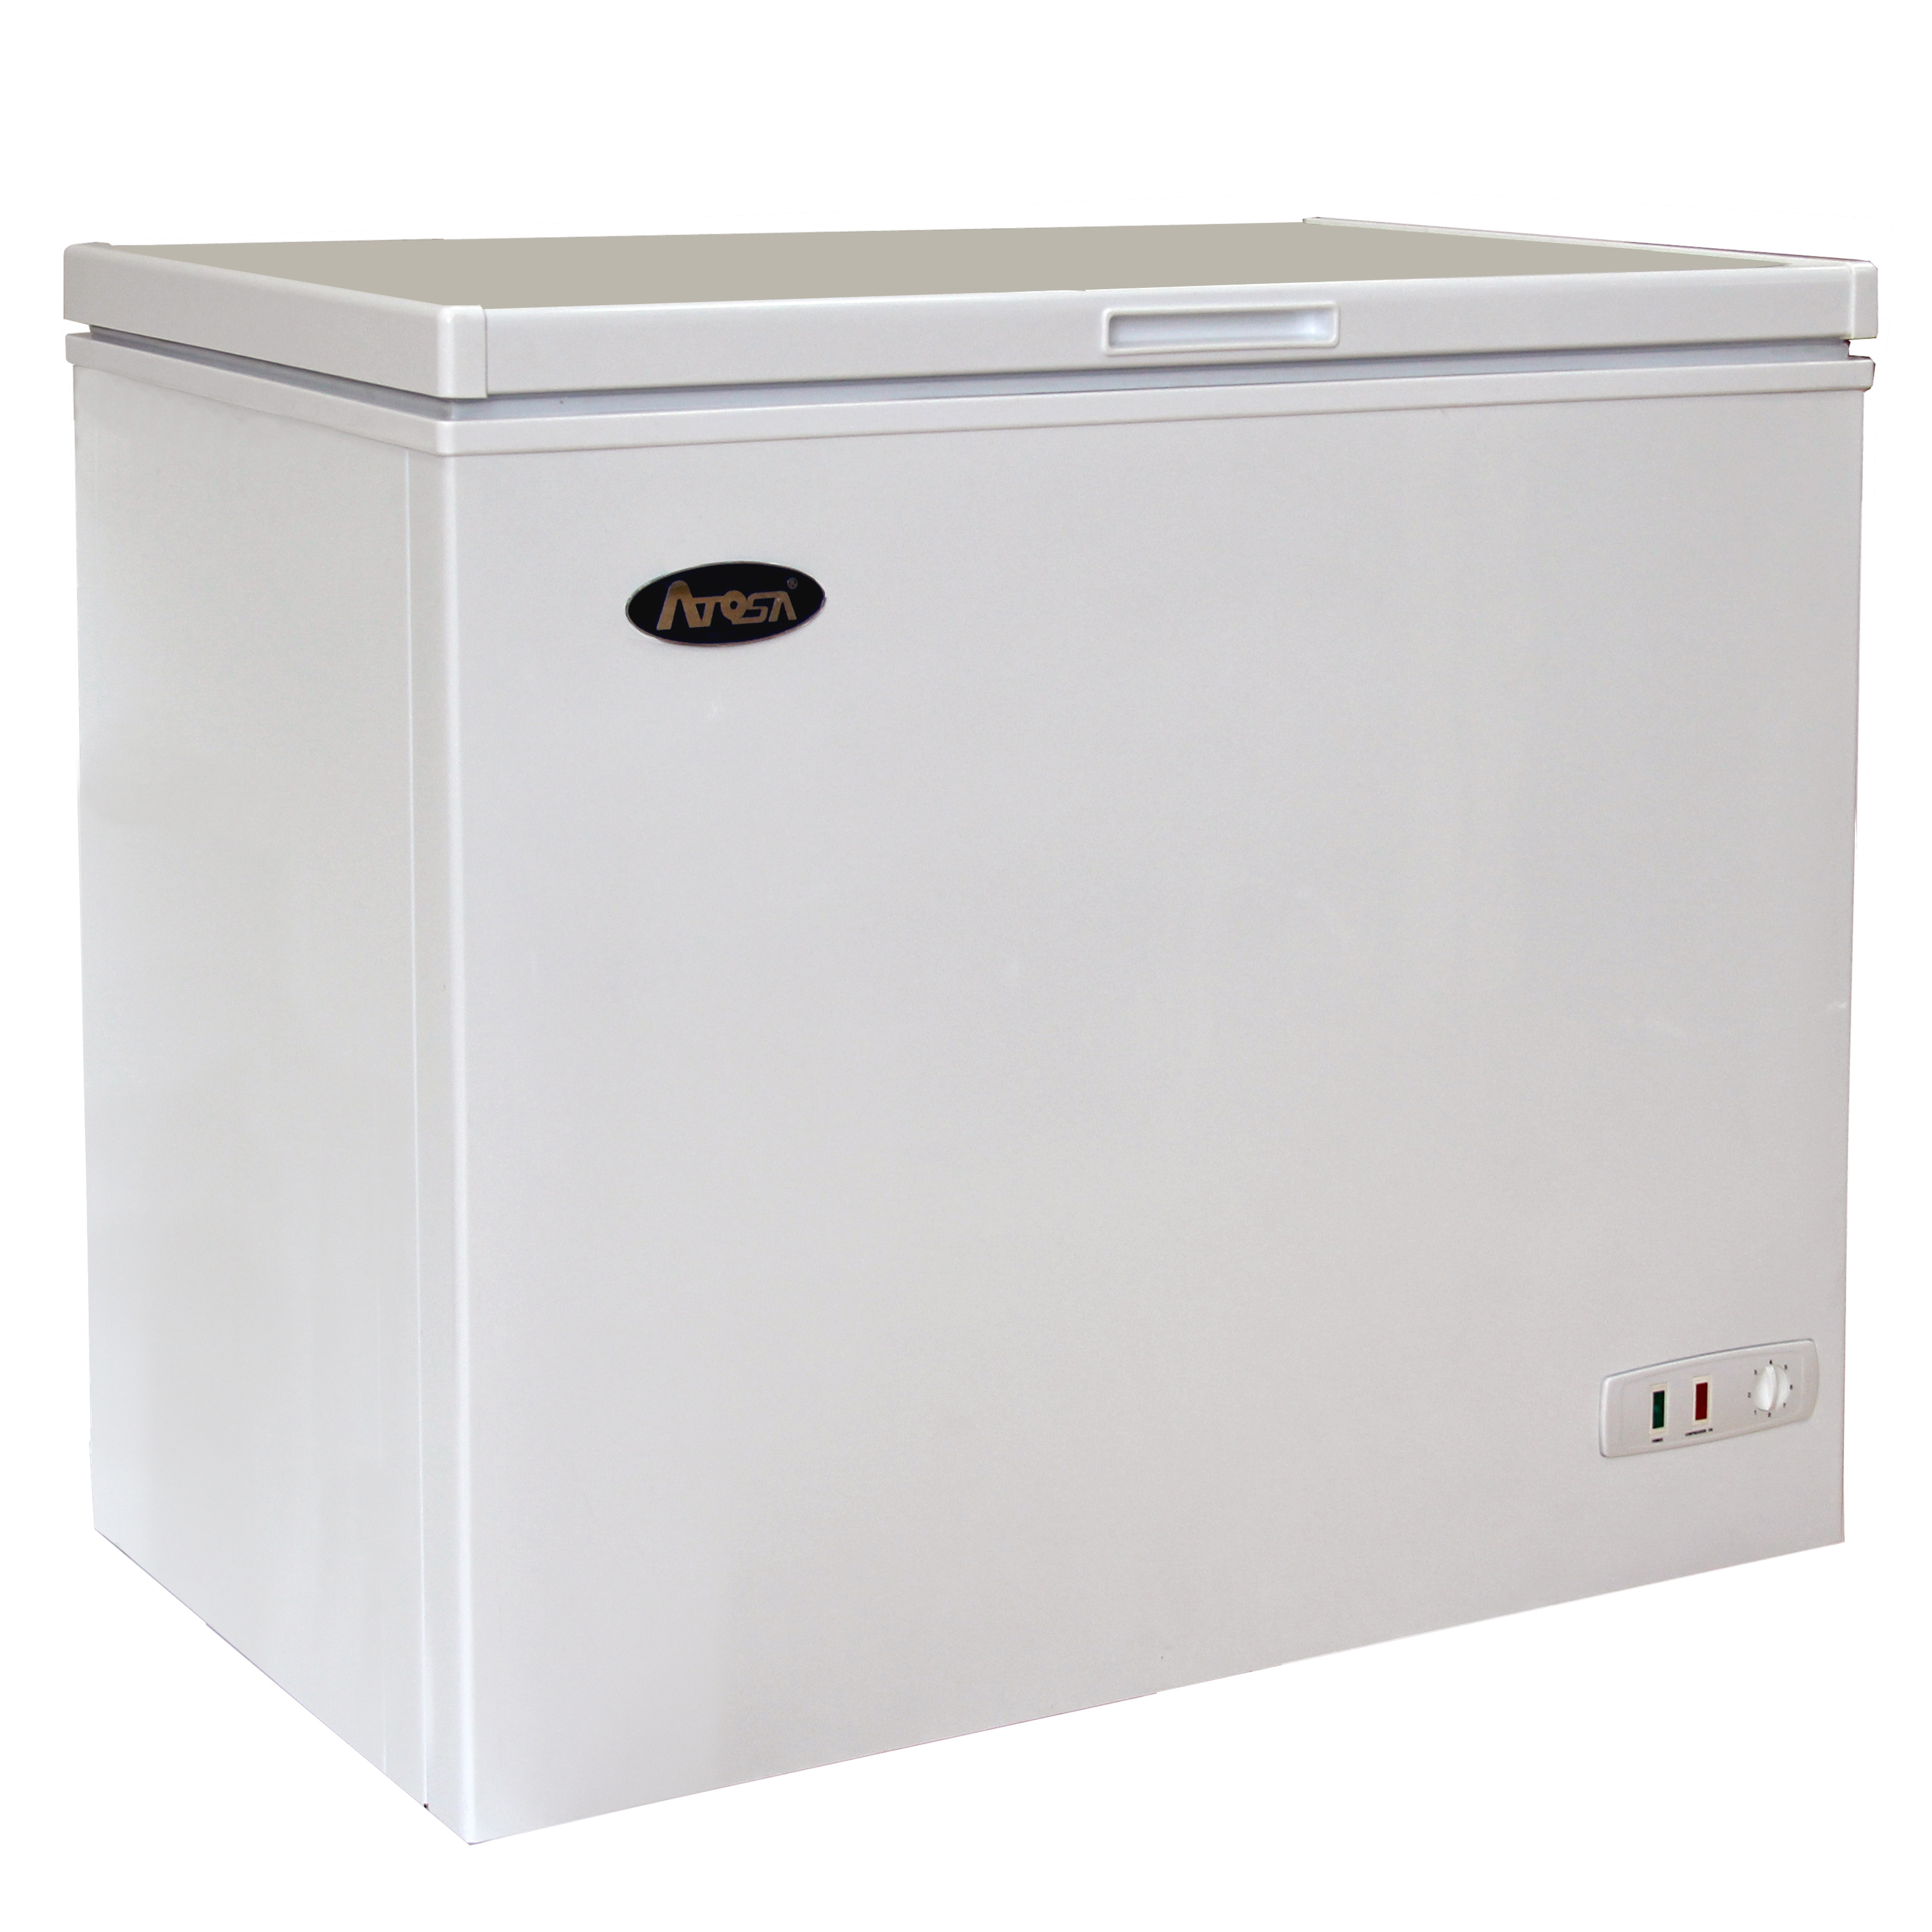 Atosa USA MWF9007 chest freezer